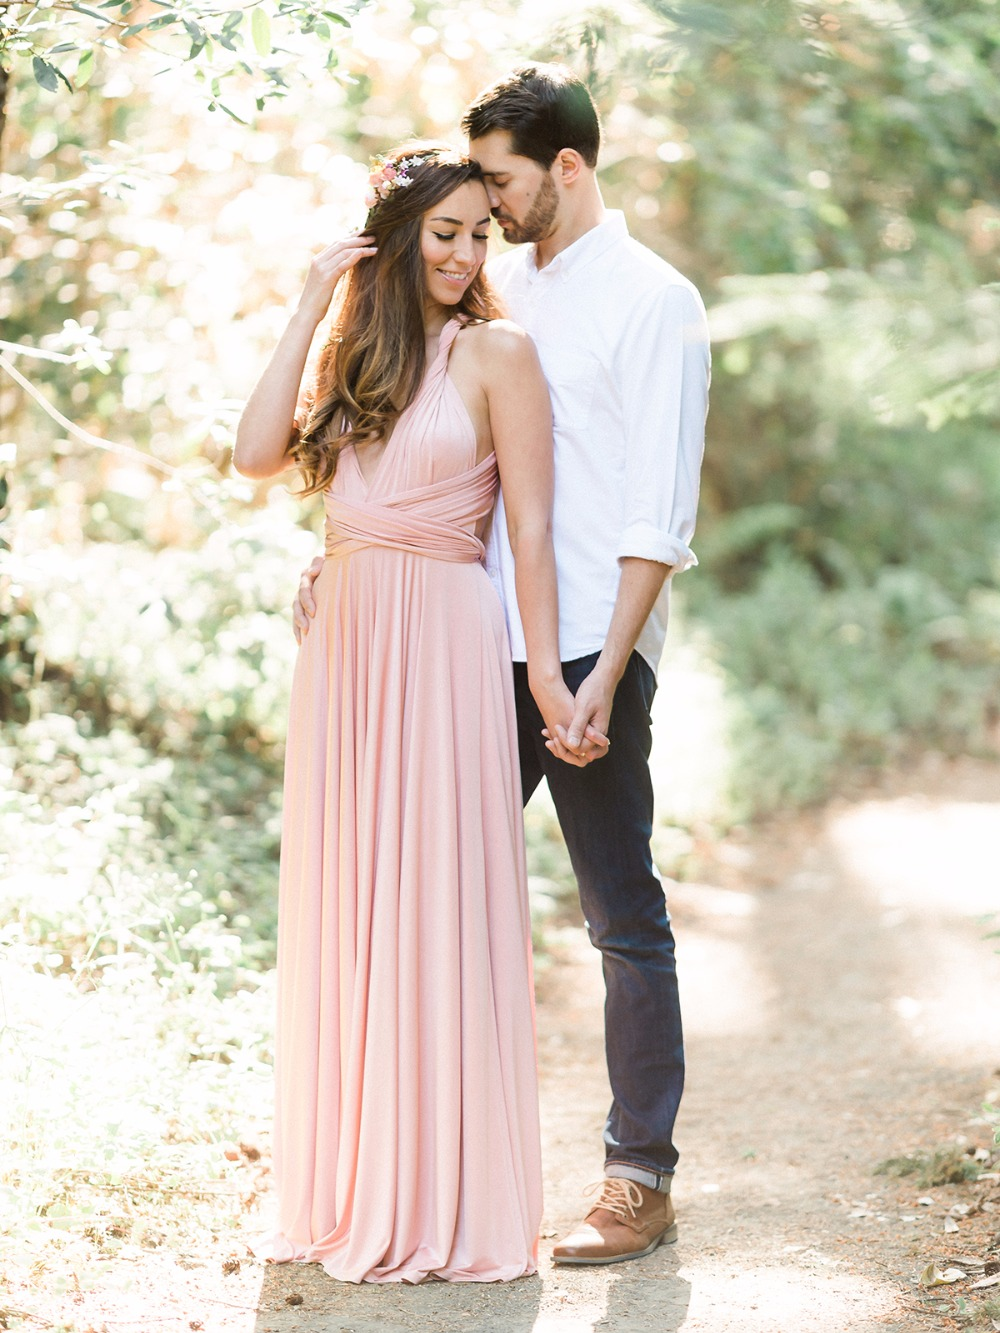 77 93 5 Engagement Session Outfit Ideas